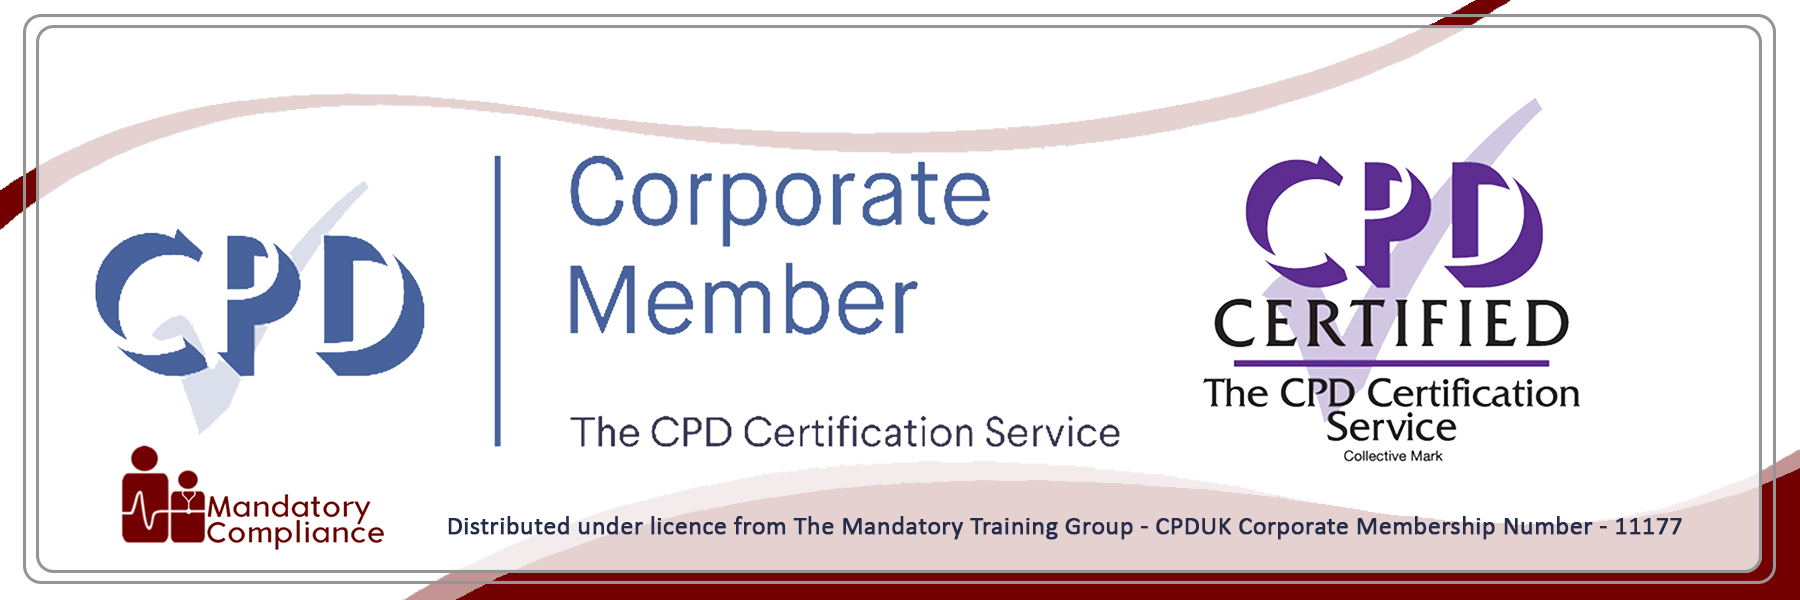 Safeguarding Adults - Online Training Course - CPD Accredited - Mandatory Compliance UK -